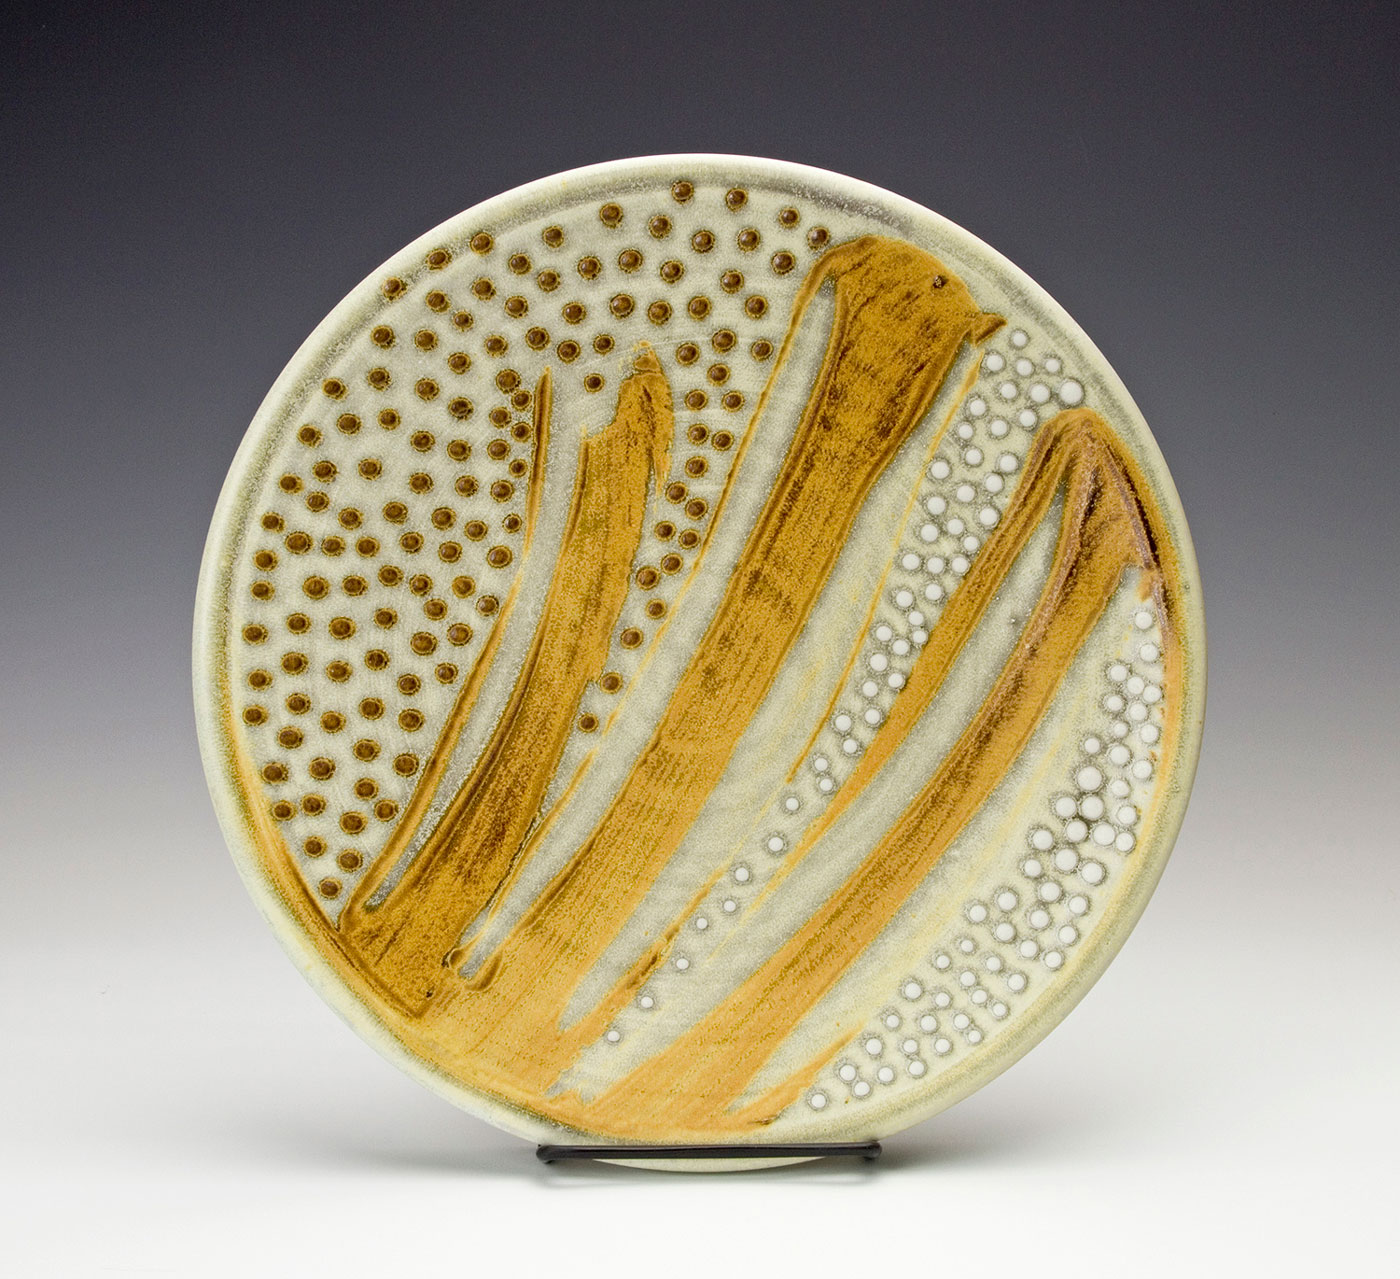 Moka-Bronze-plate-with-brown-and-white-dots-Samantha-Henneke-Seagrove-Pottery.jpg